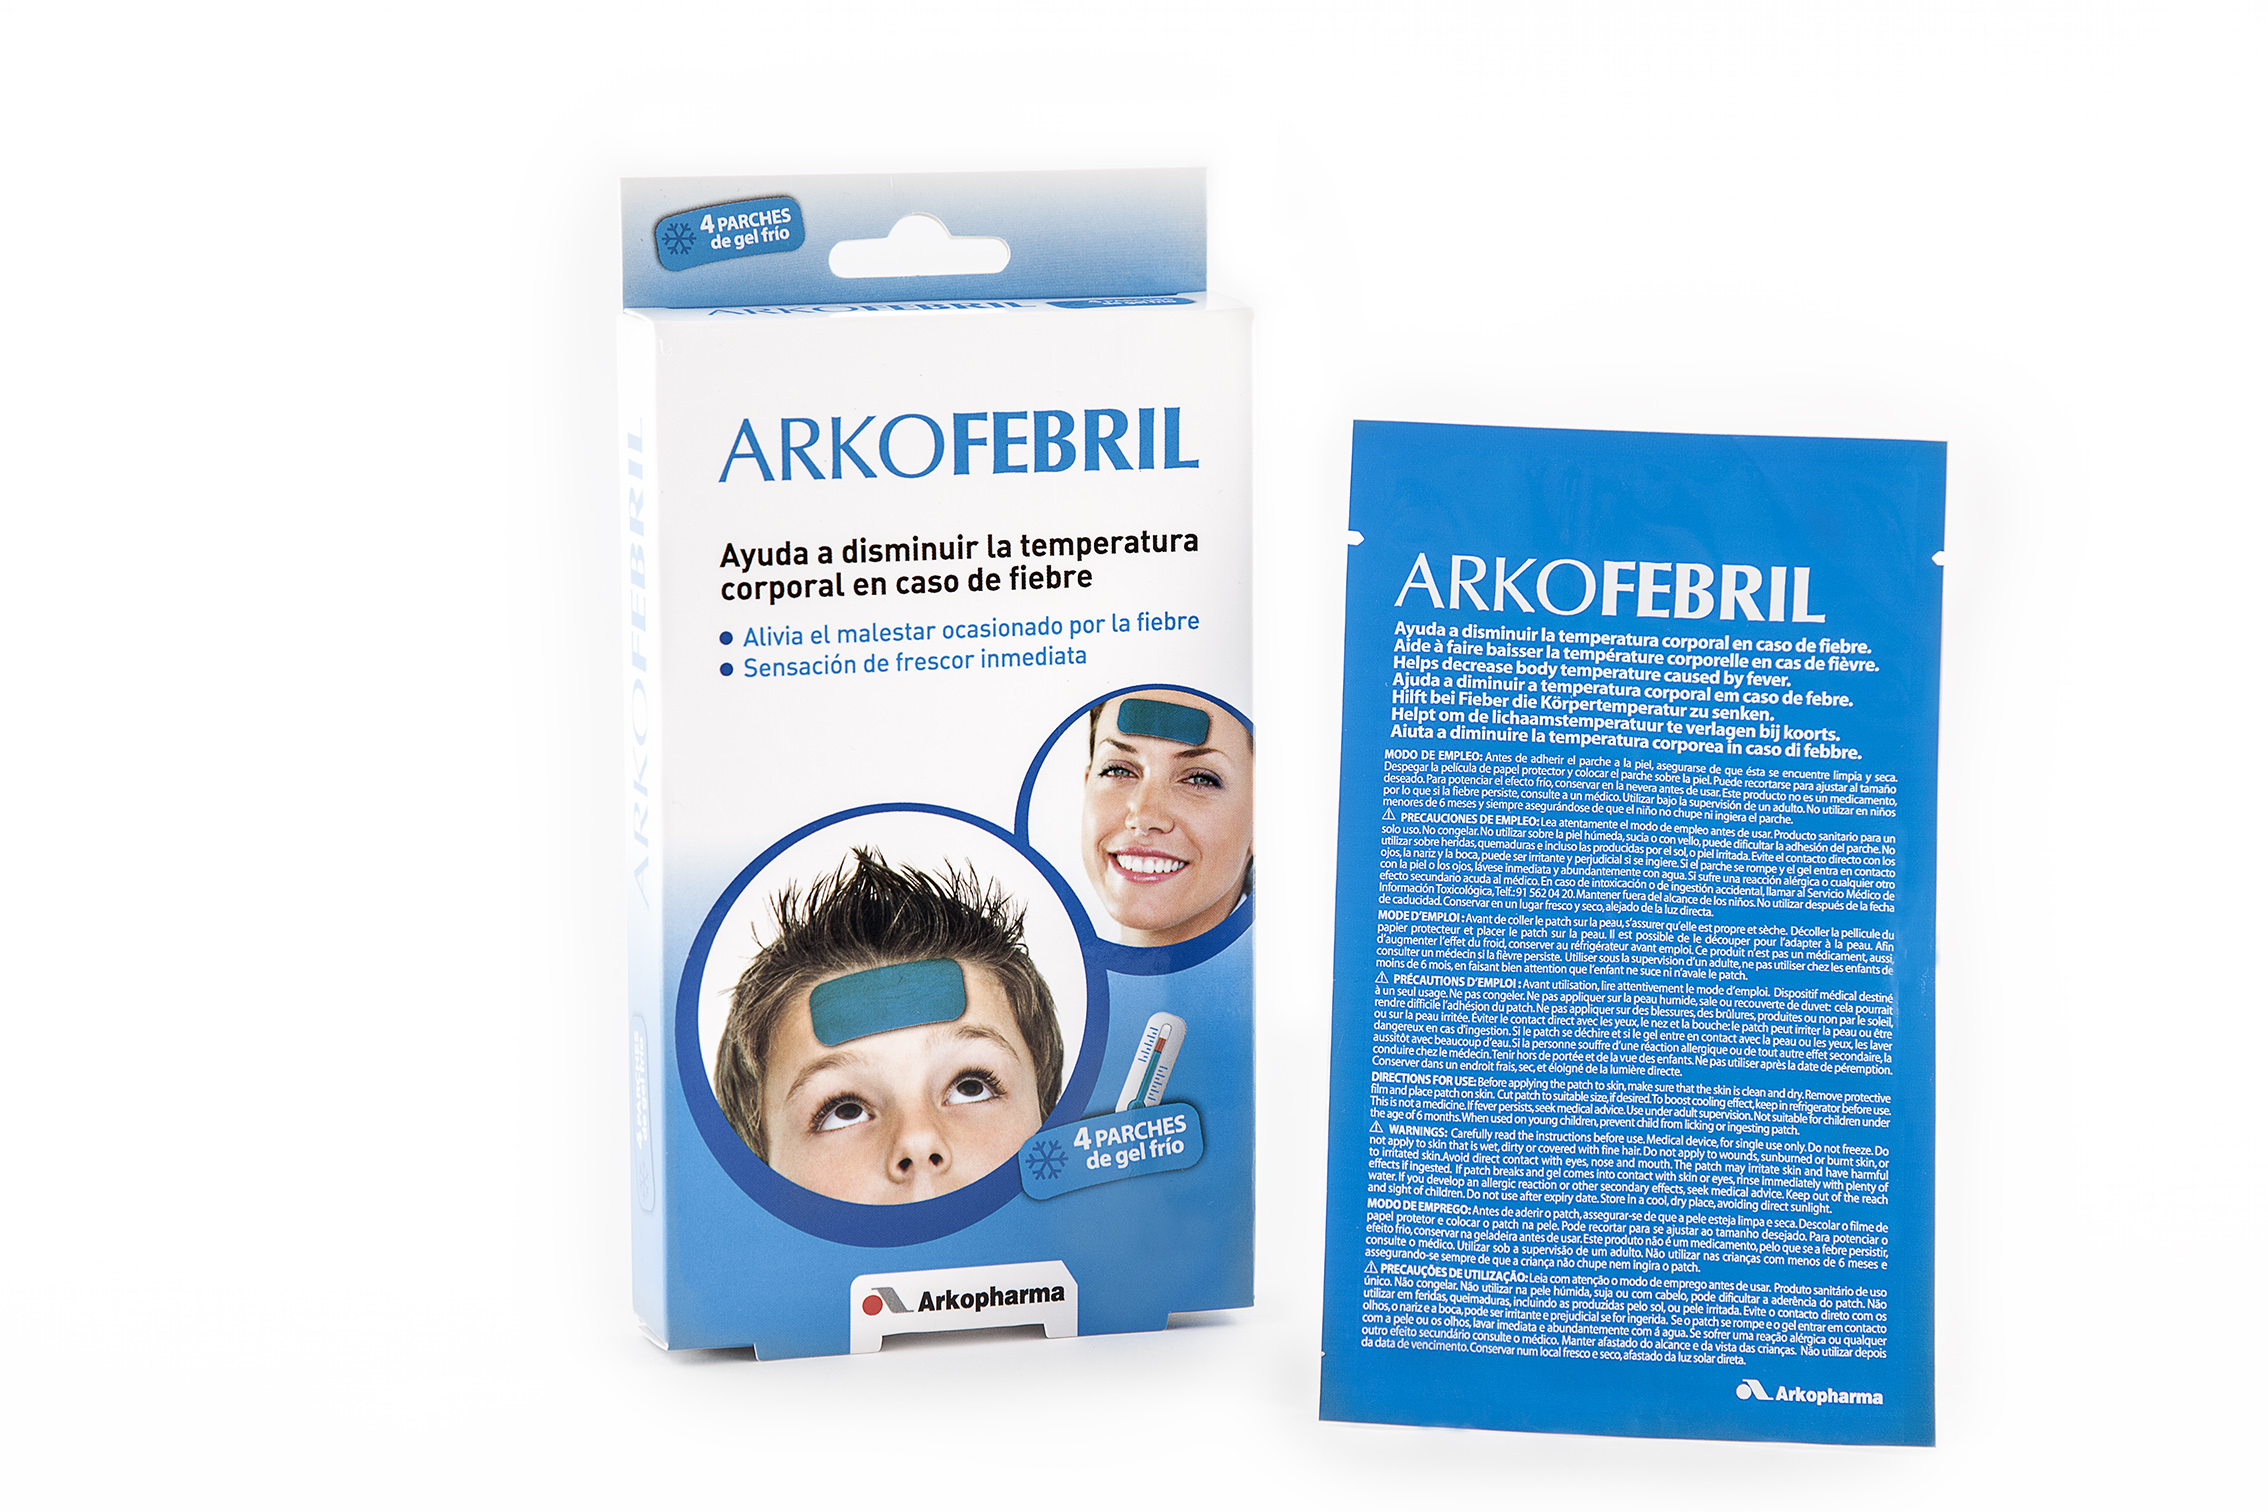 Arkofebril